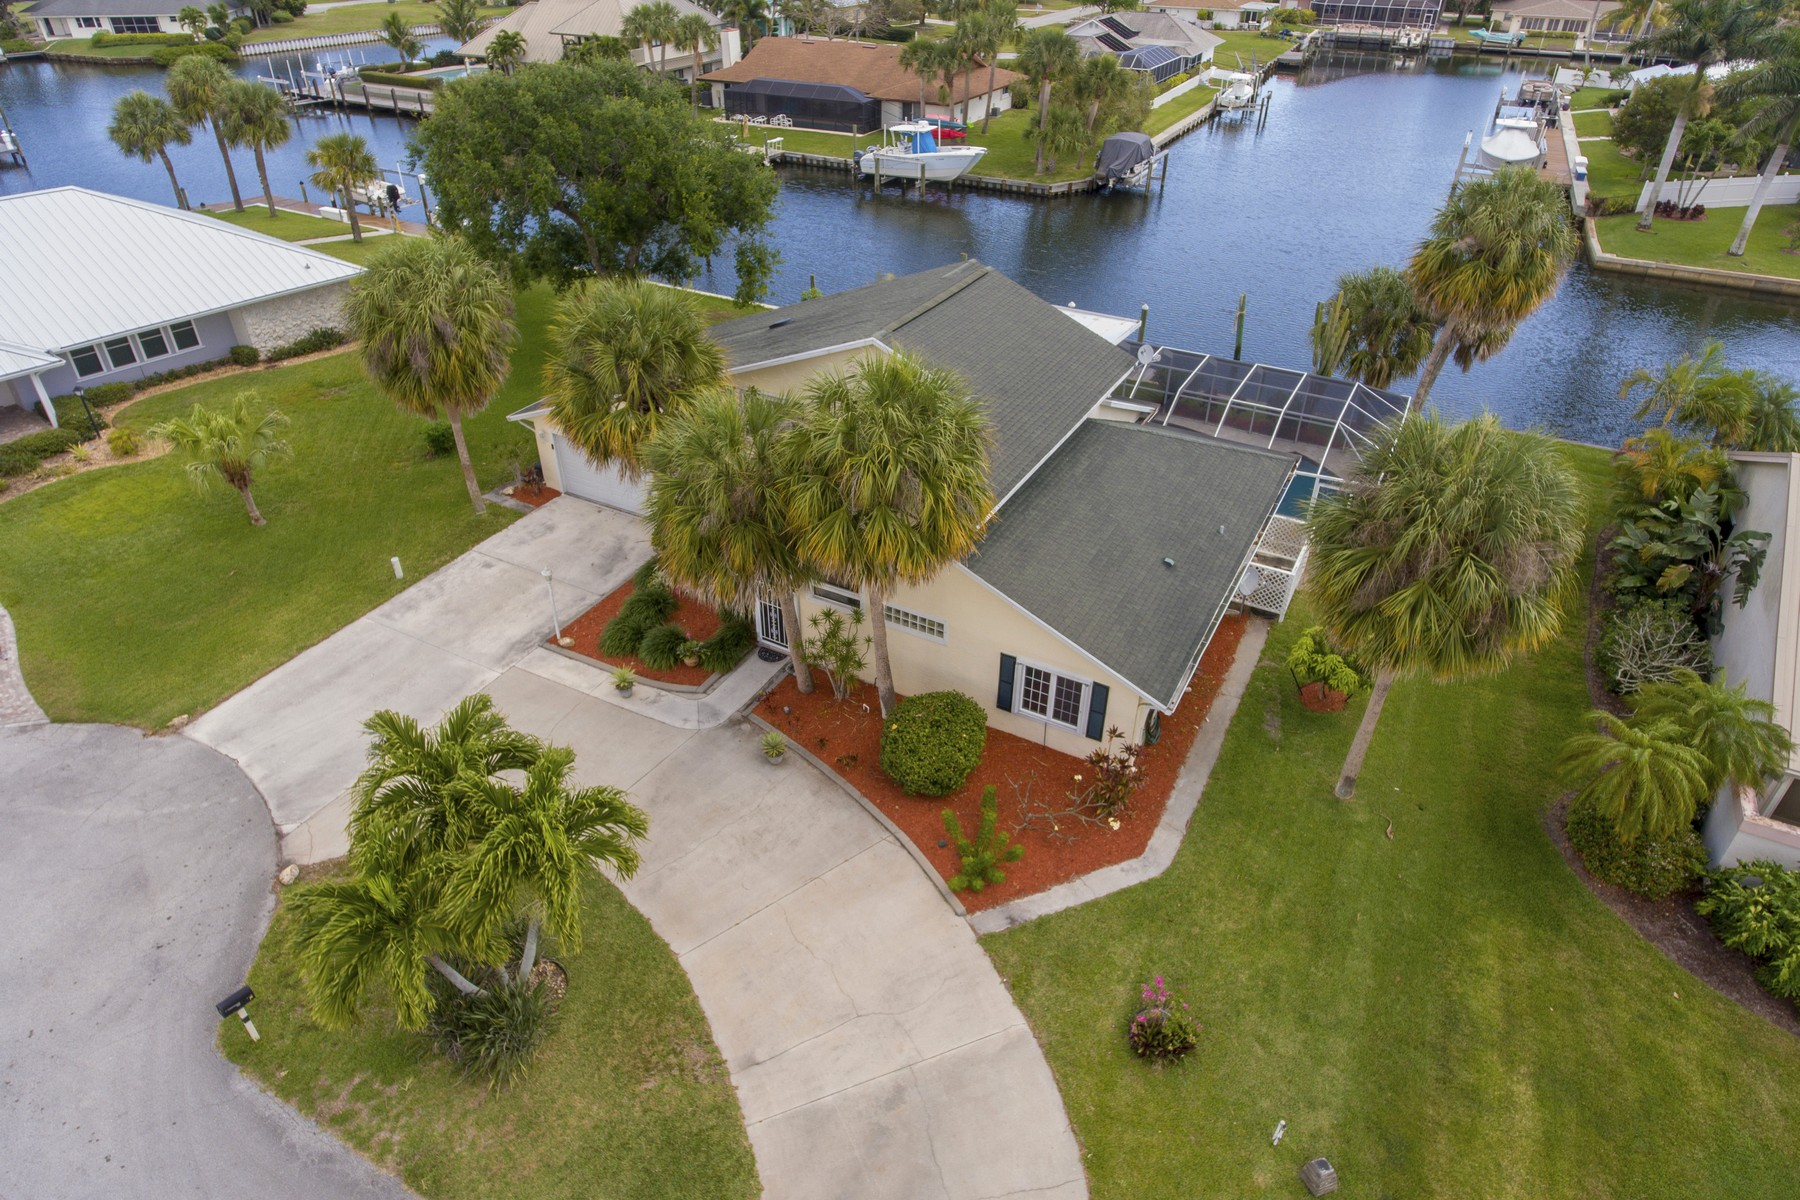 Single Family Homes für Verkauf beim Boater's Paradise Four Bedroom Pool Home 126 Queen Bess Court, Fort Pierce, Florida 34949 Vereinigte Staaten